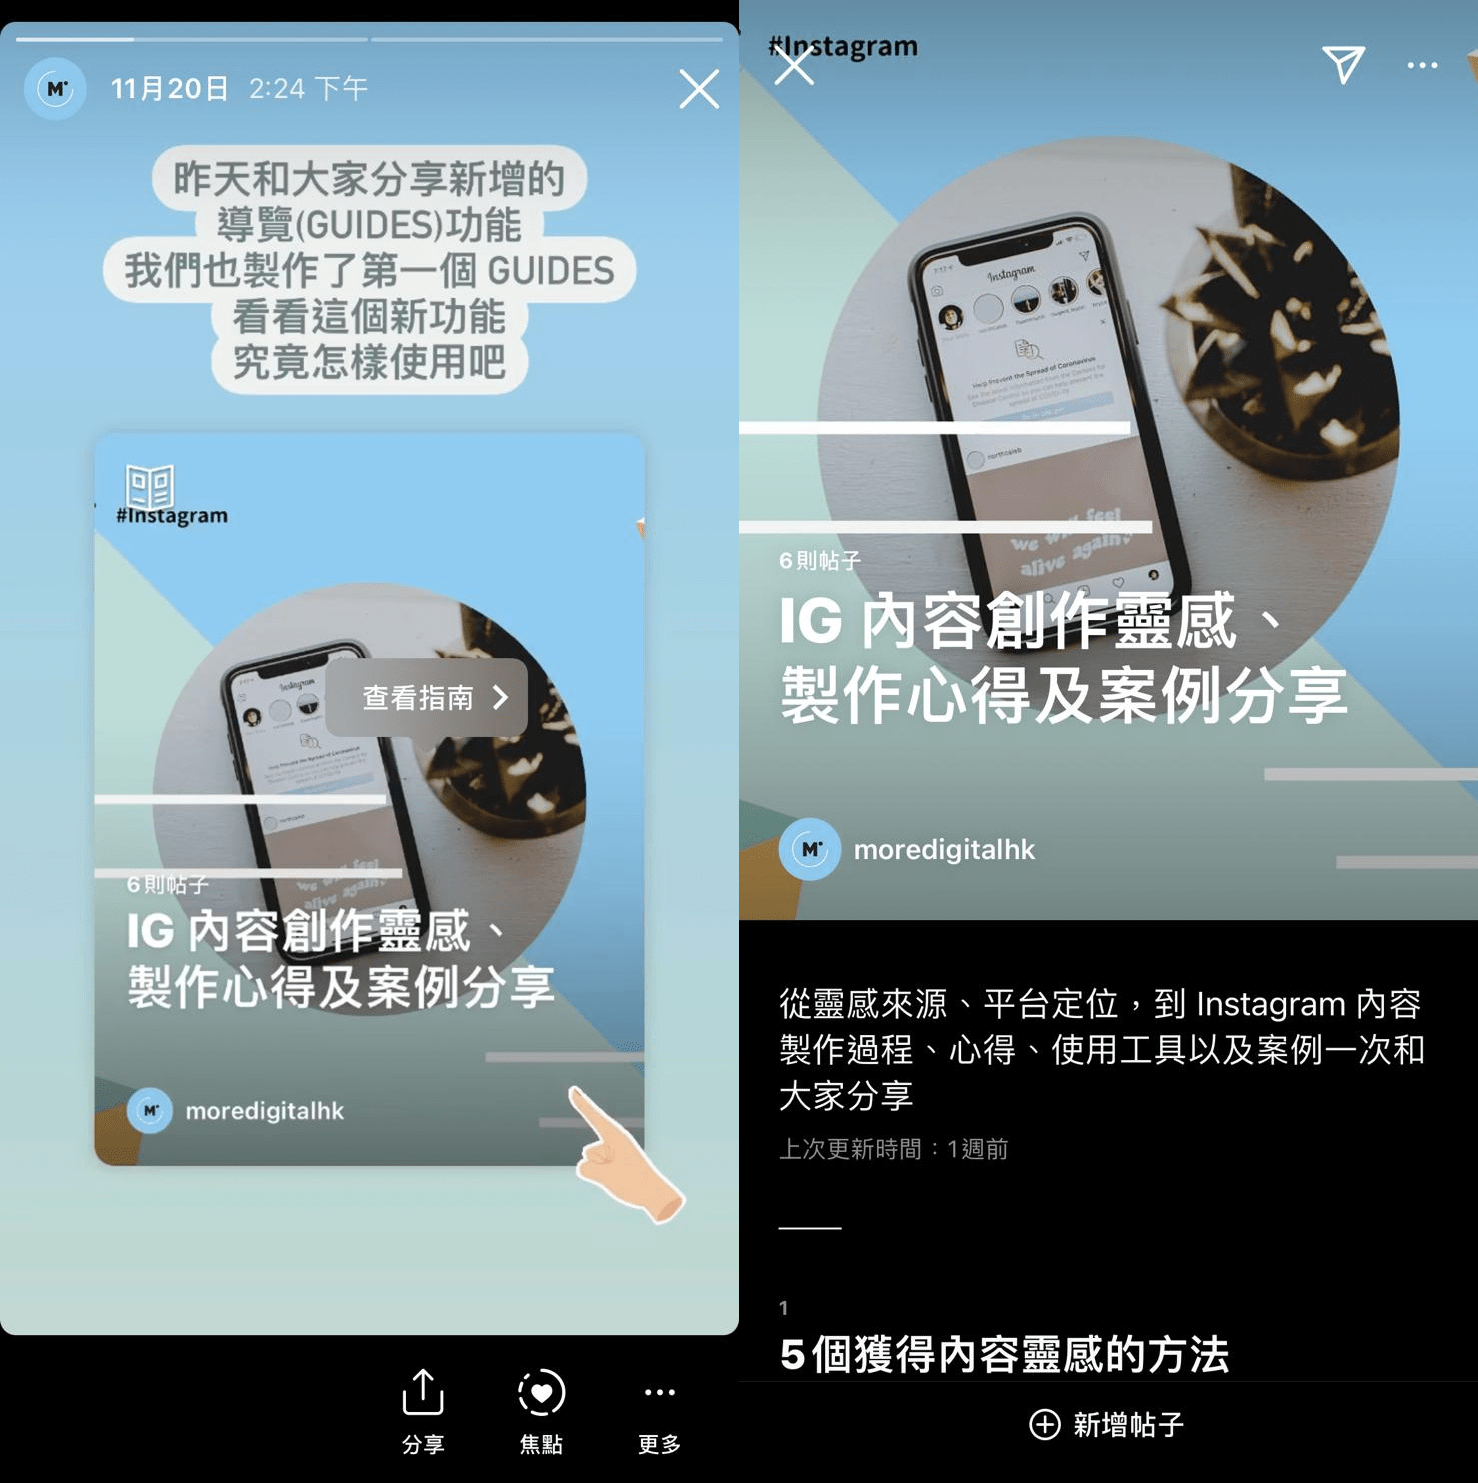 Share IG Guide on Story